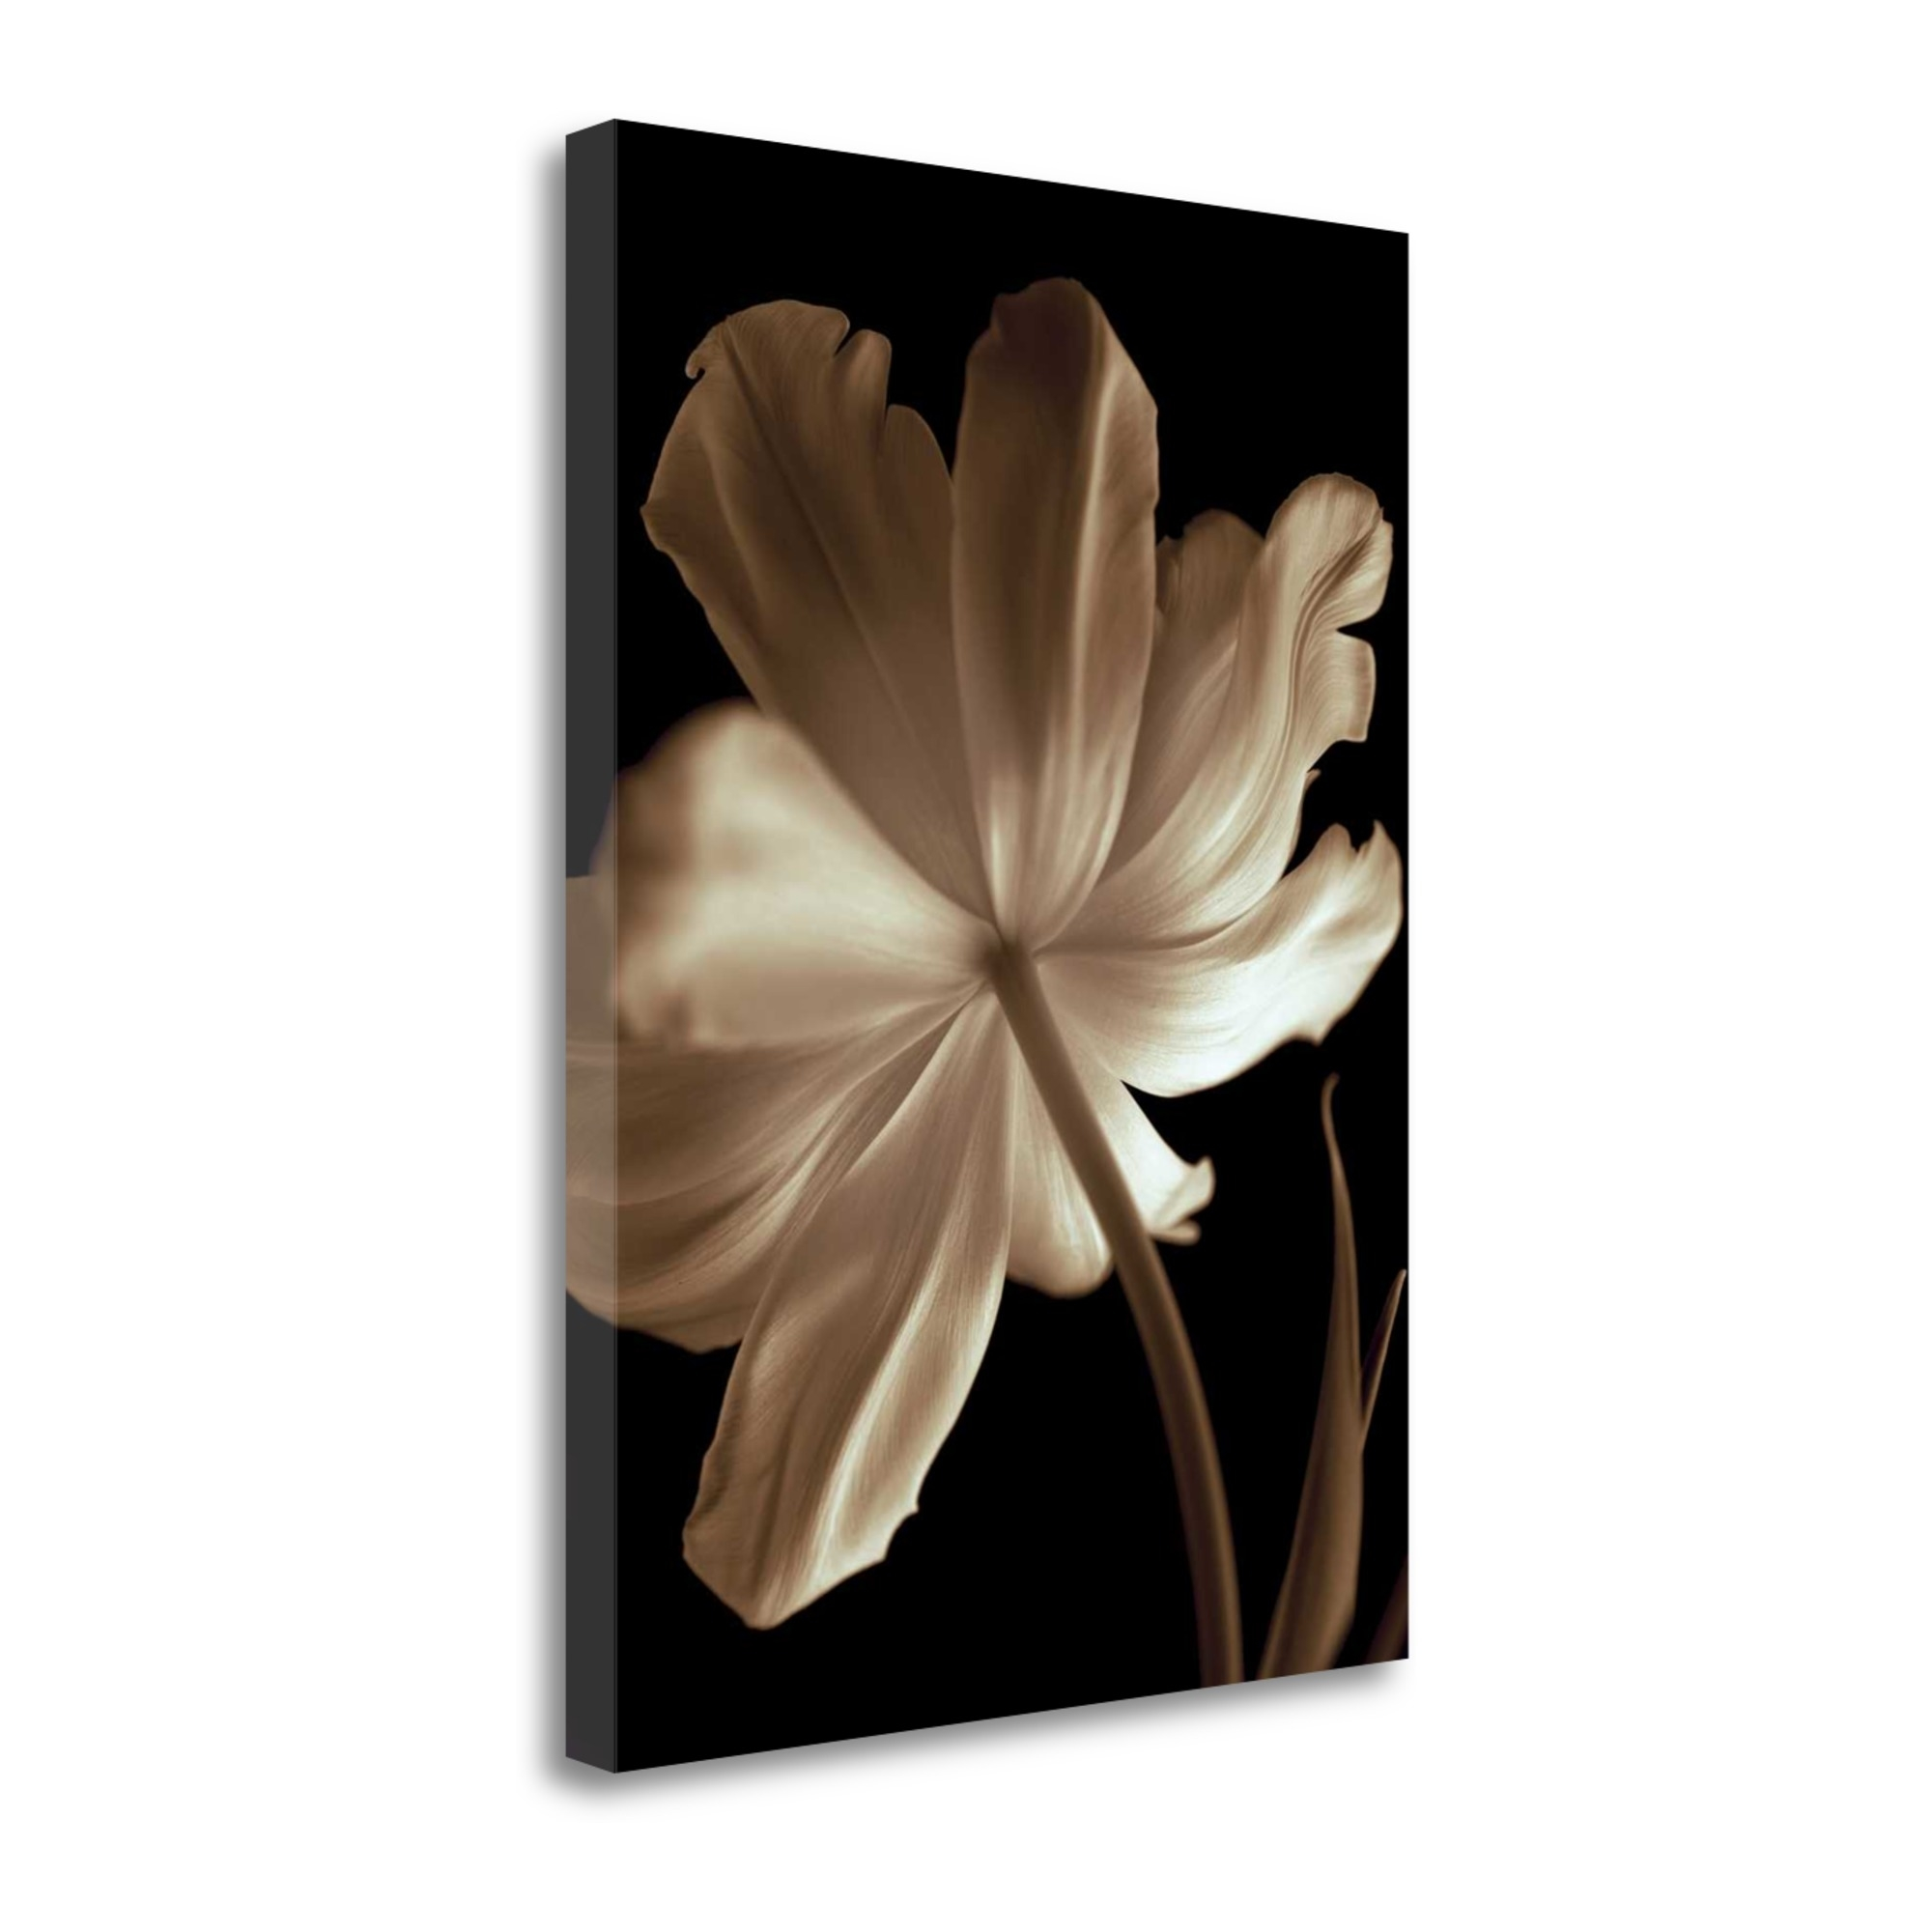 "Champagne Tulip II By Charles Britt, 35"" x 47\"" Fine Art Giclee Print on Gallery Wrap Canvas, Ready to Hang"